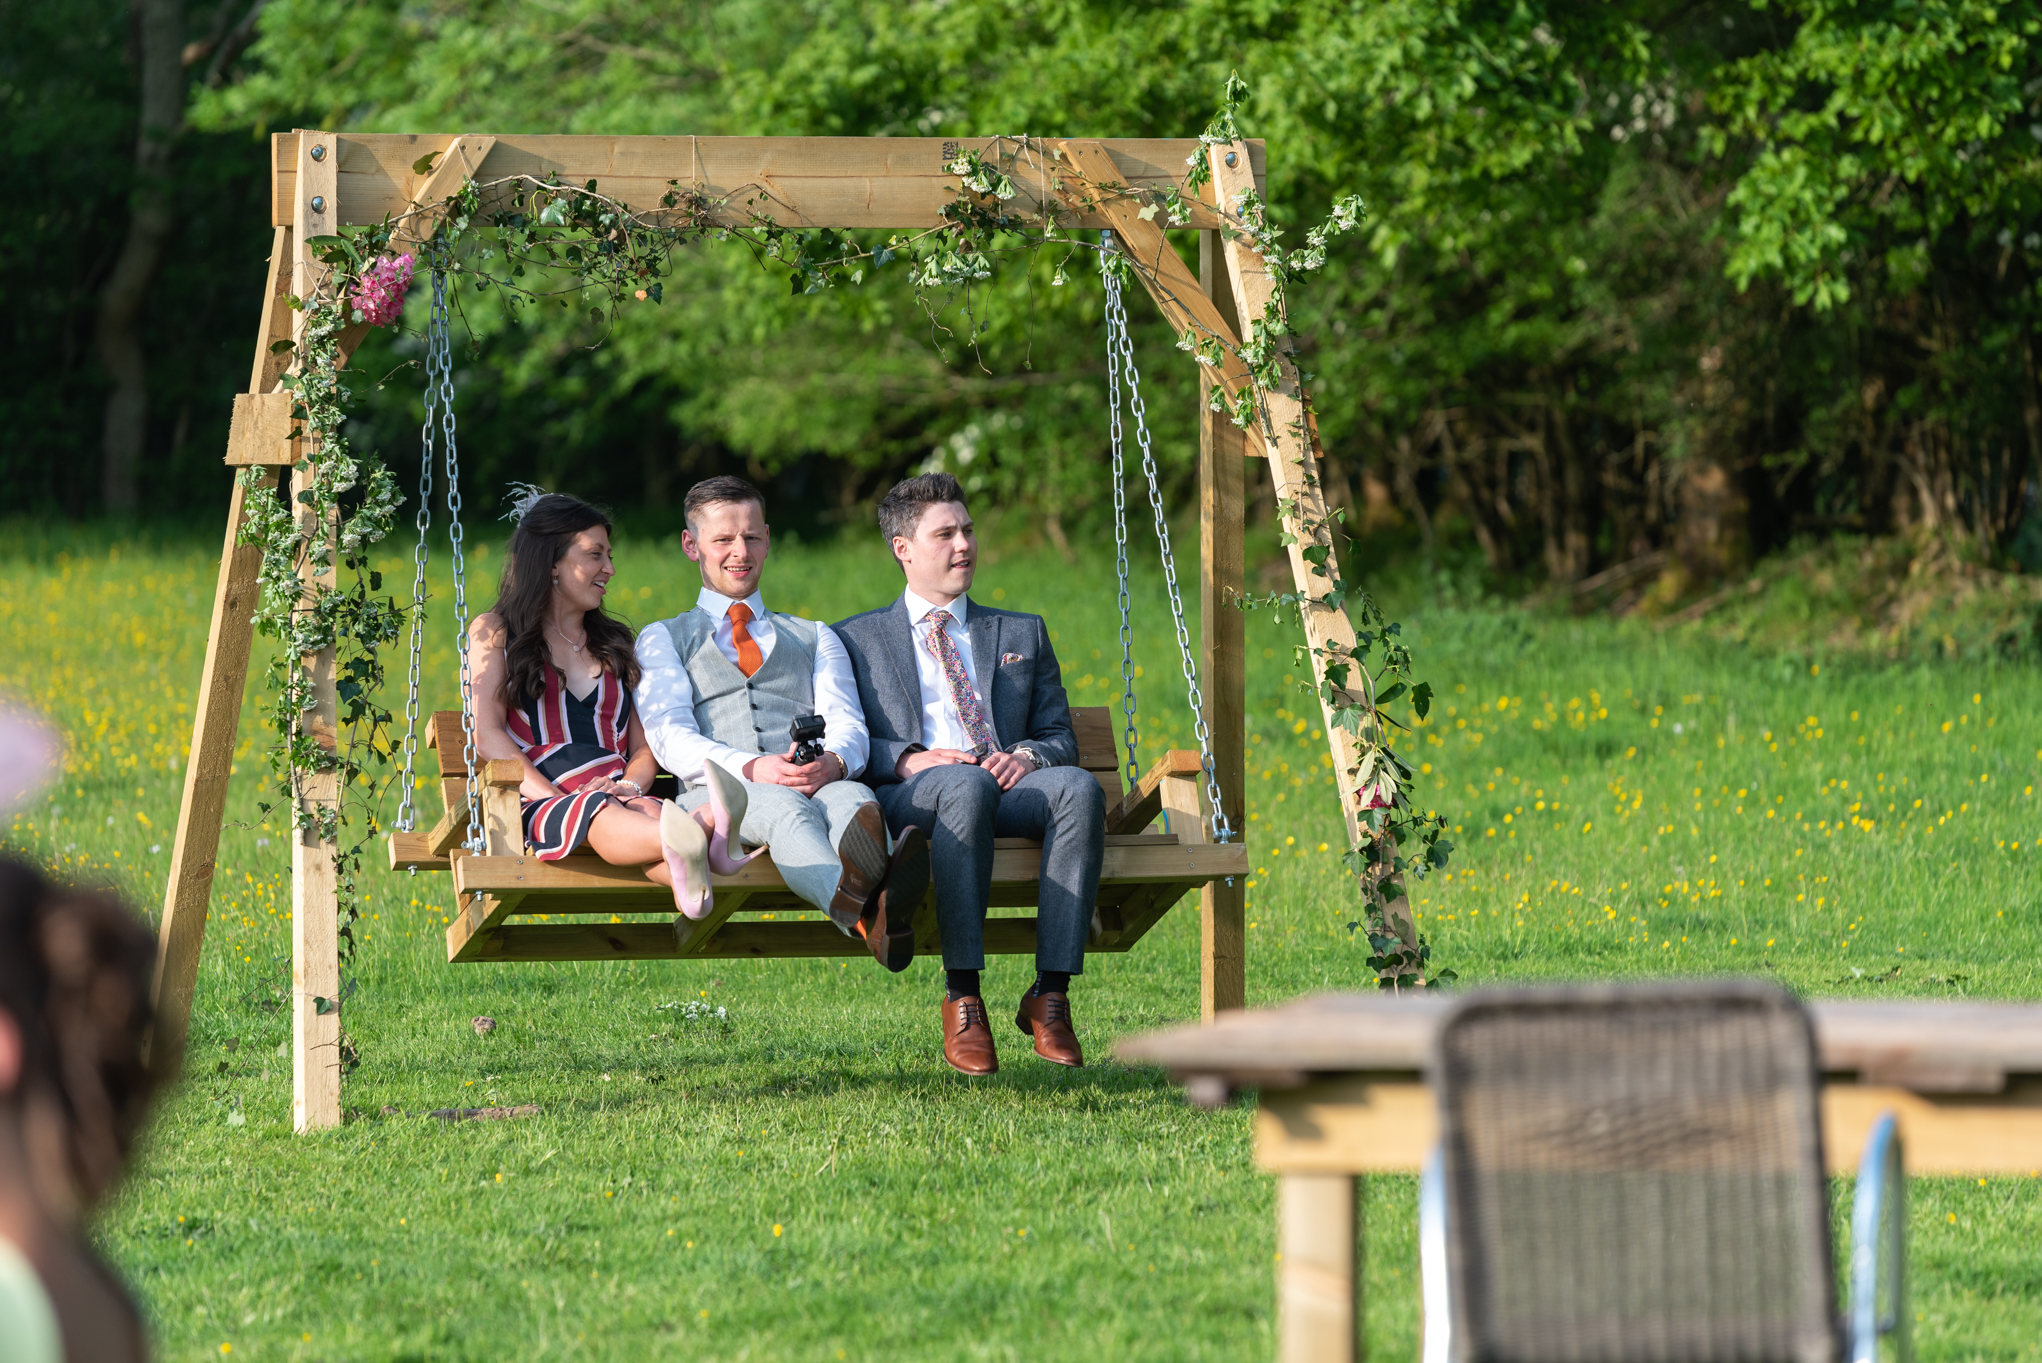 Wedding guests on swing - Powys Wedding Photography